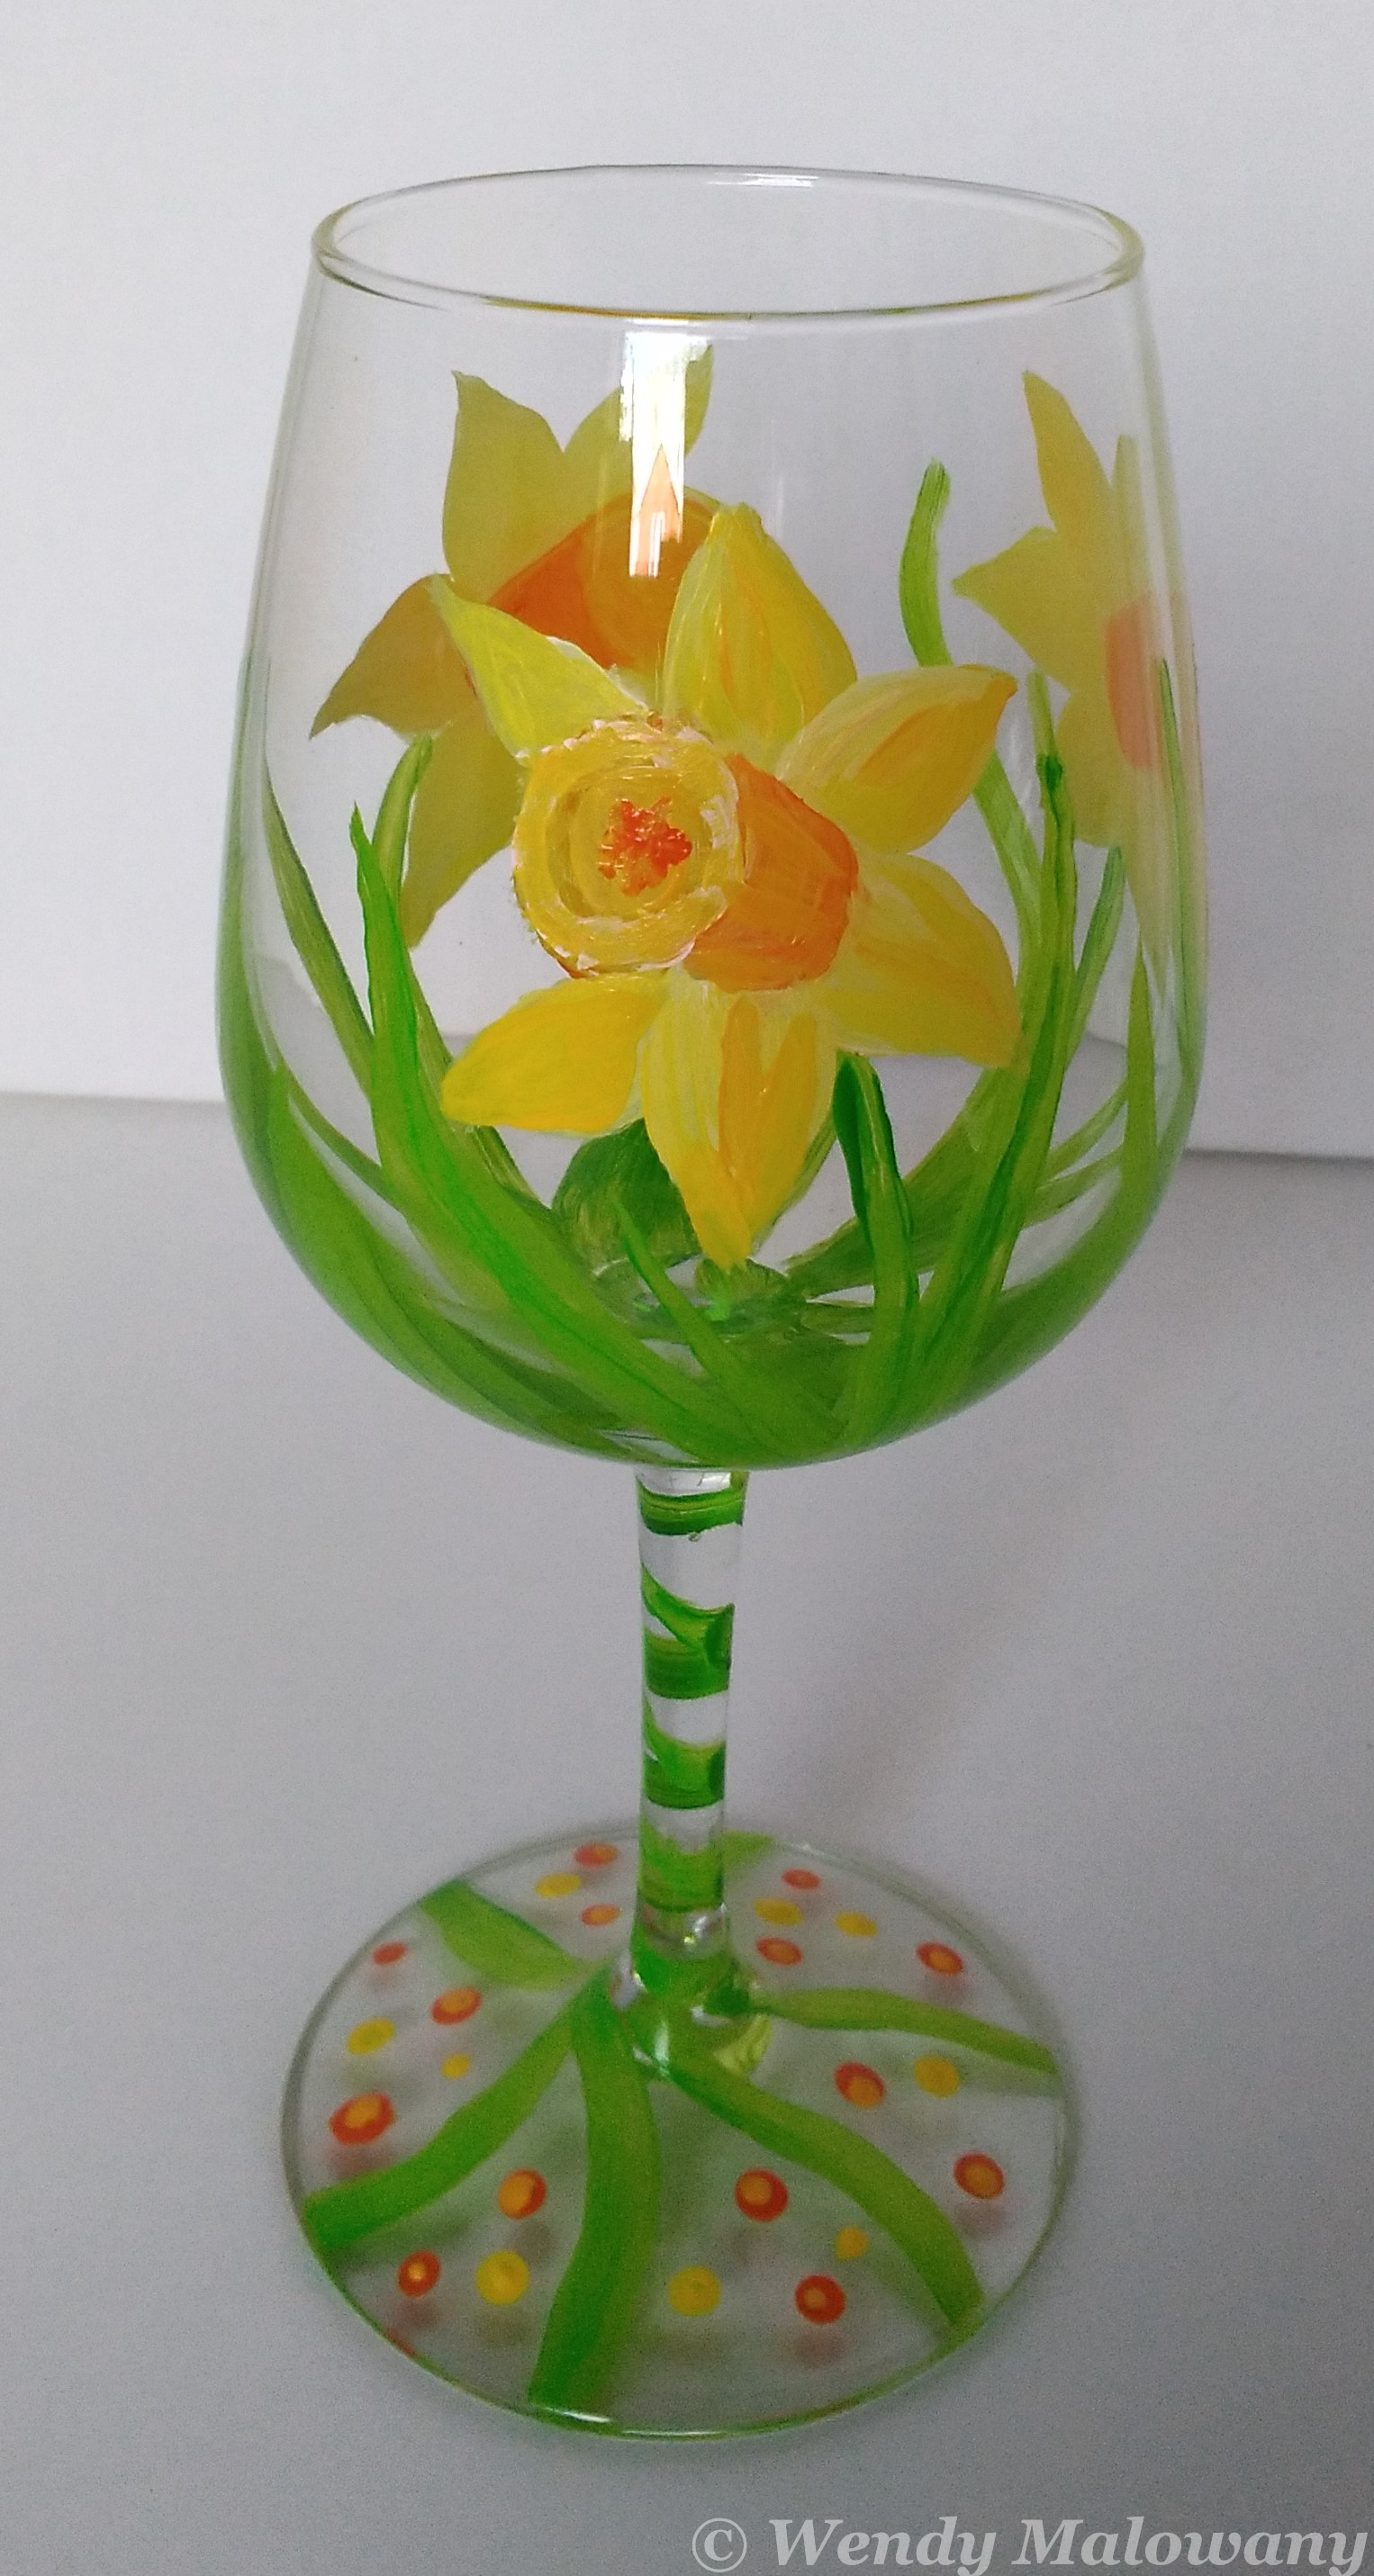 daffodil-wine-glass-painting-malowany